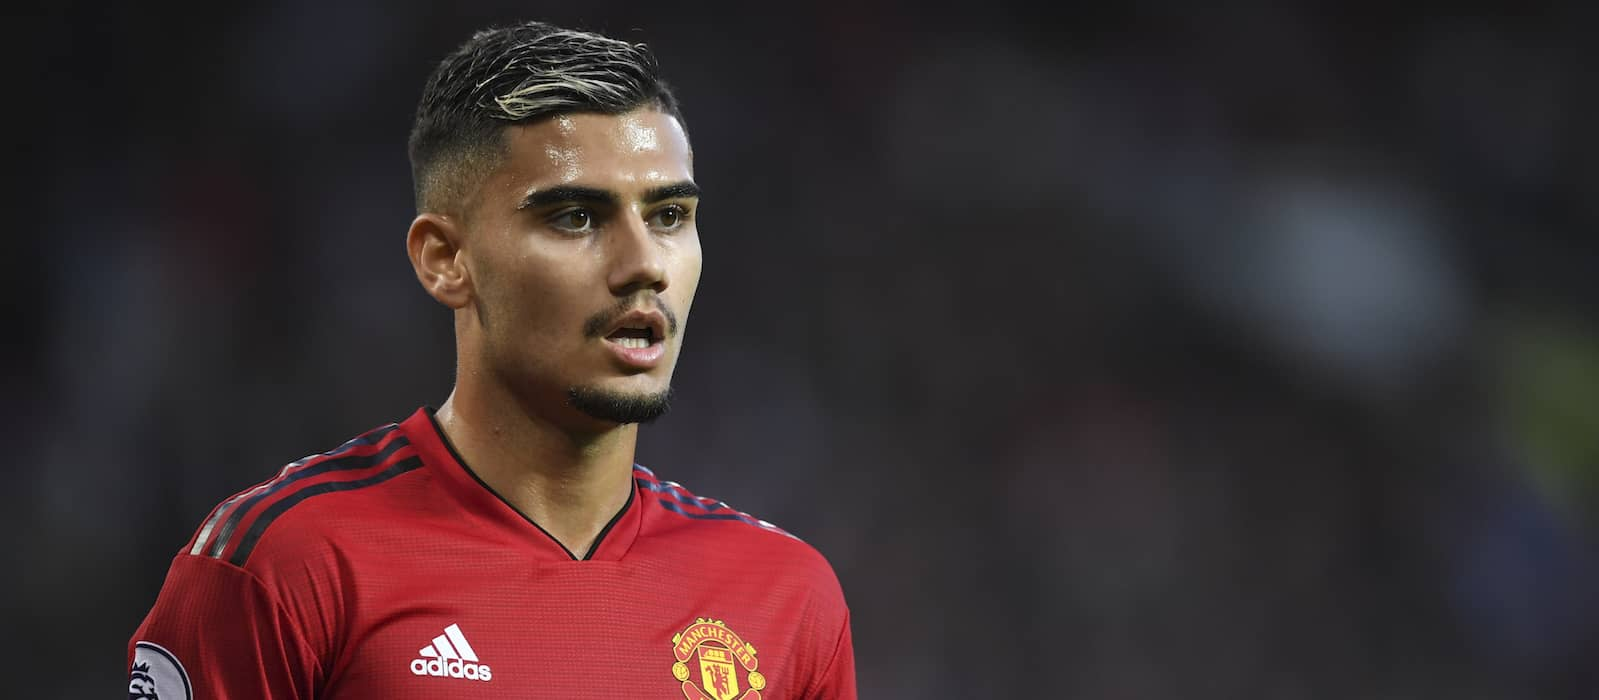 Manchester United vs Brighton and Hove Albion: Potential XI with Andreas Pereira and Diogo Dalot